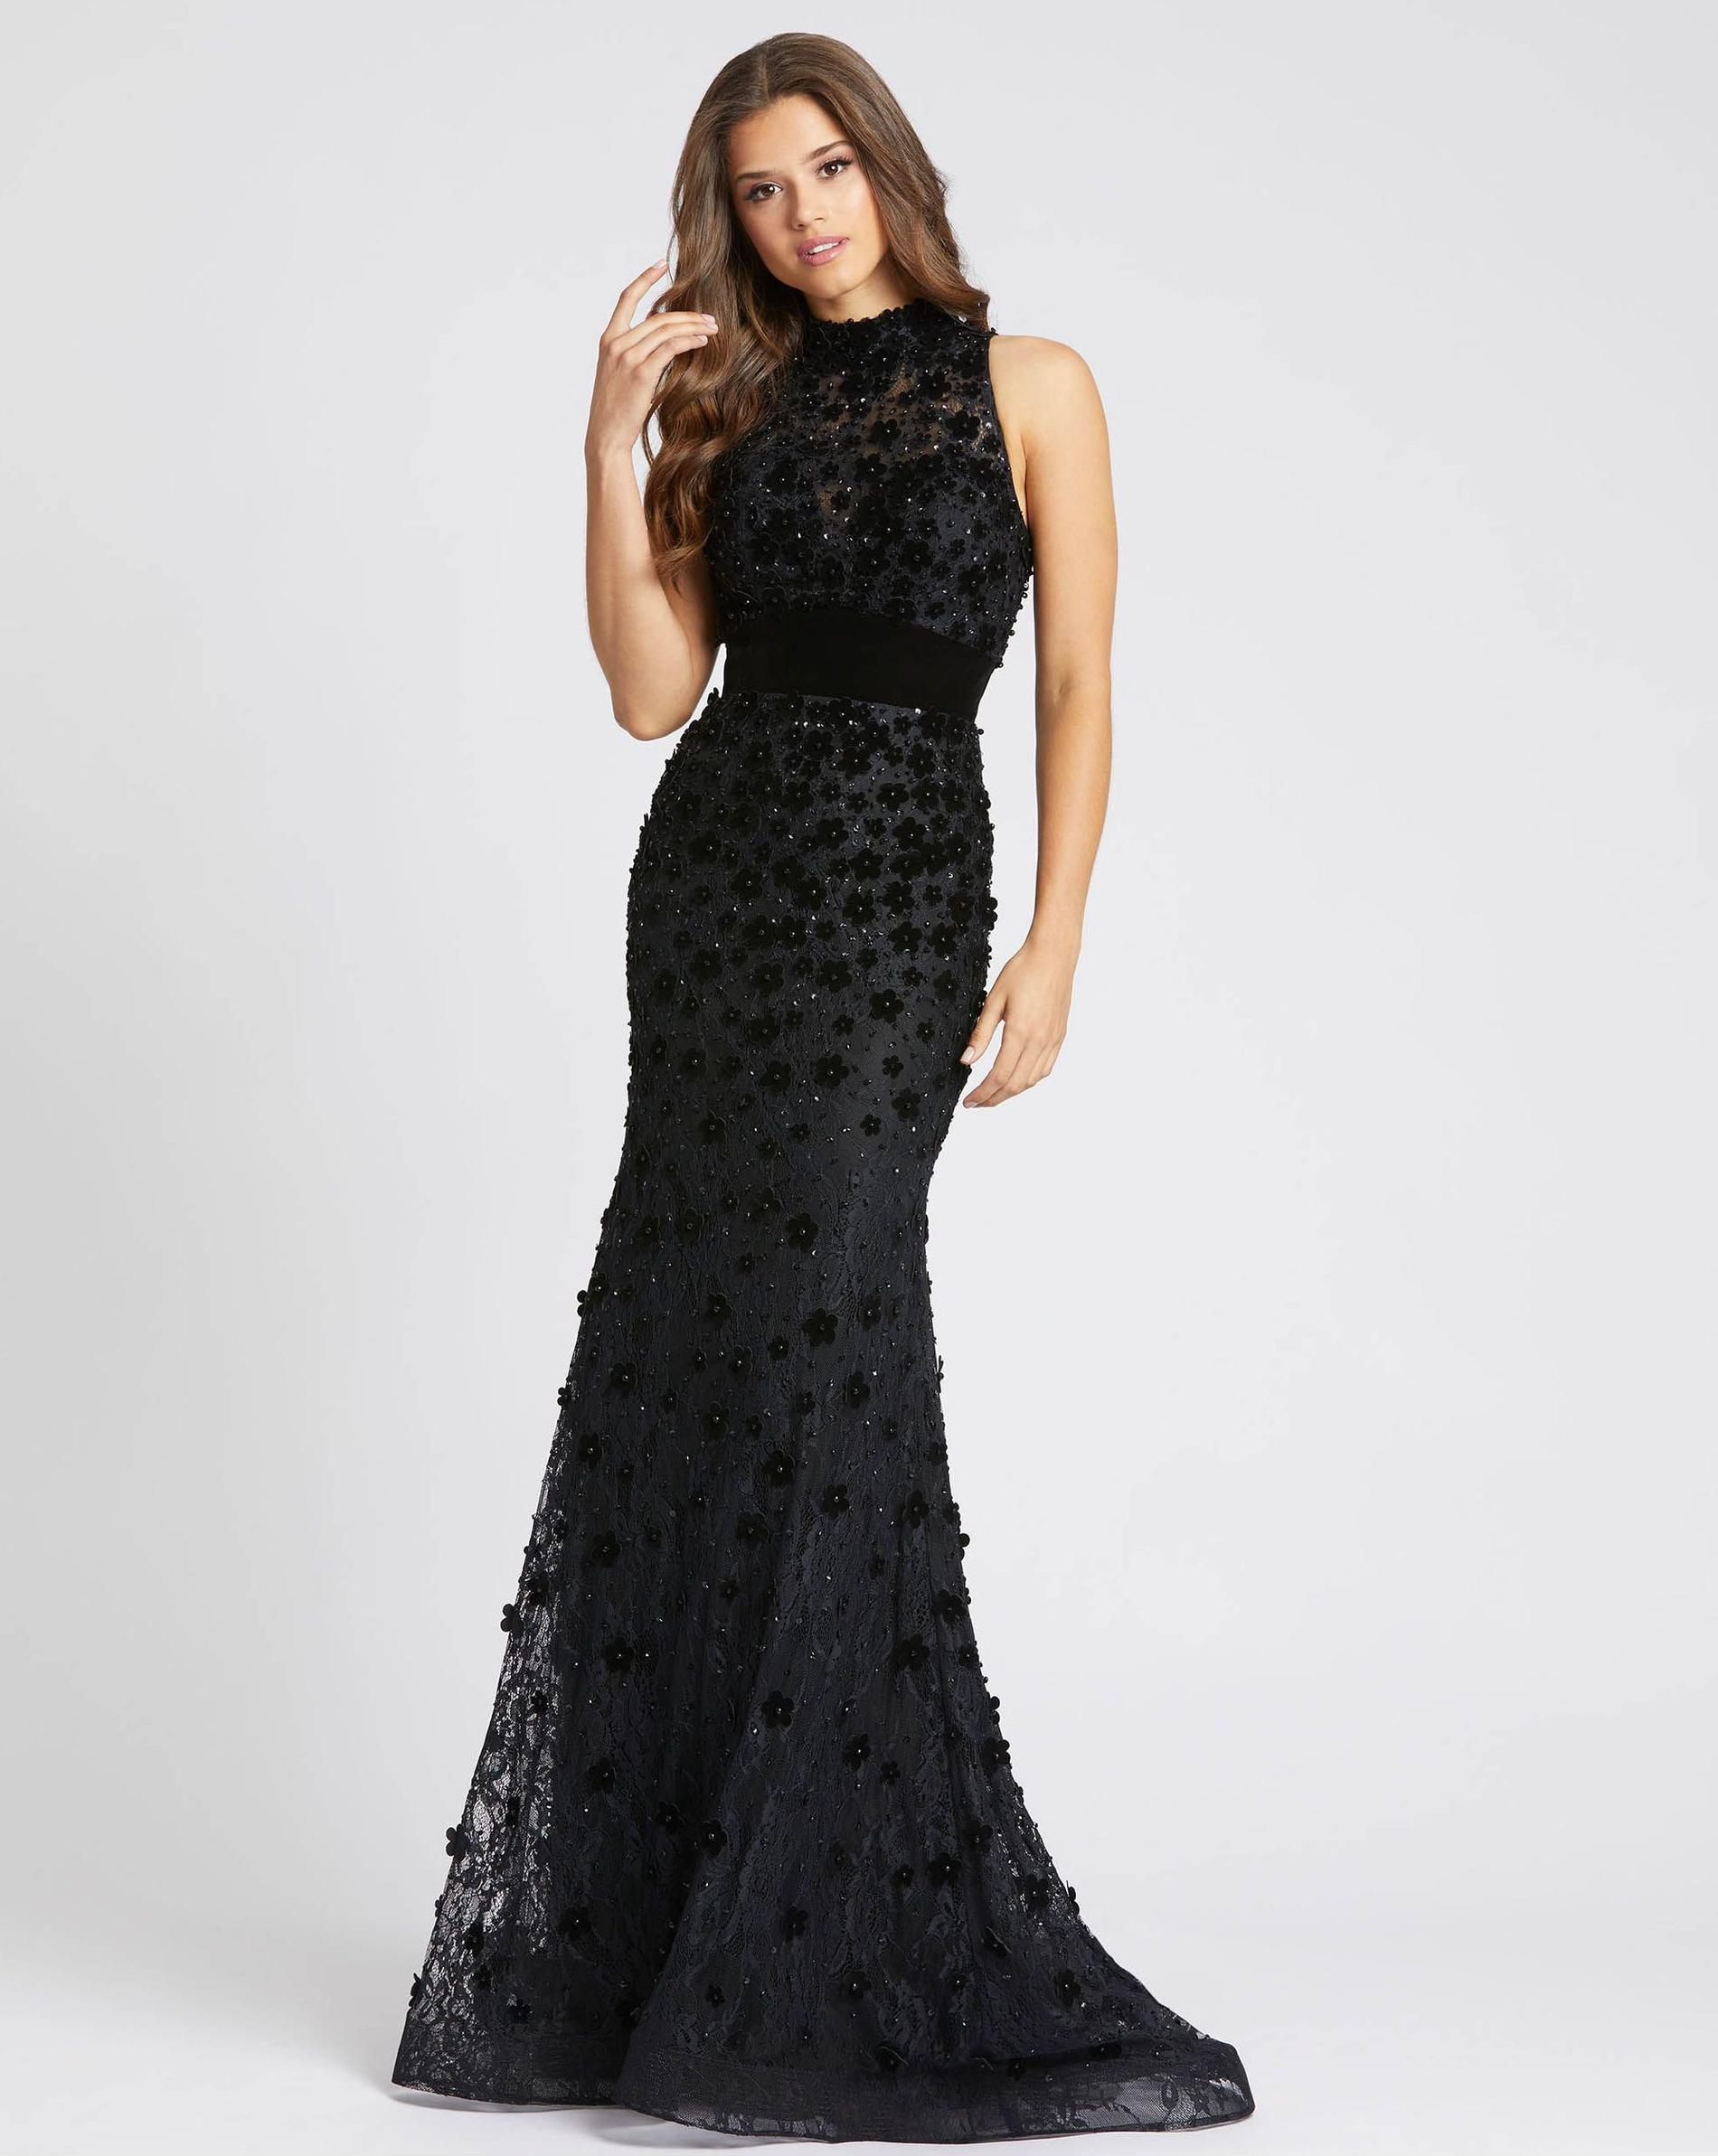 Style 66589 Mac Duggal Black Size 12 Sorority Formal Tall Height Wedding Guest Mermaid Dress on Queenly